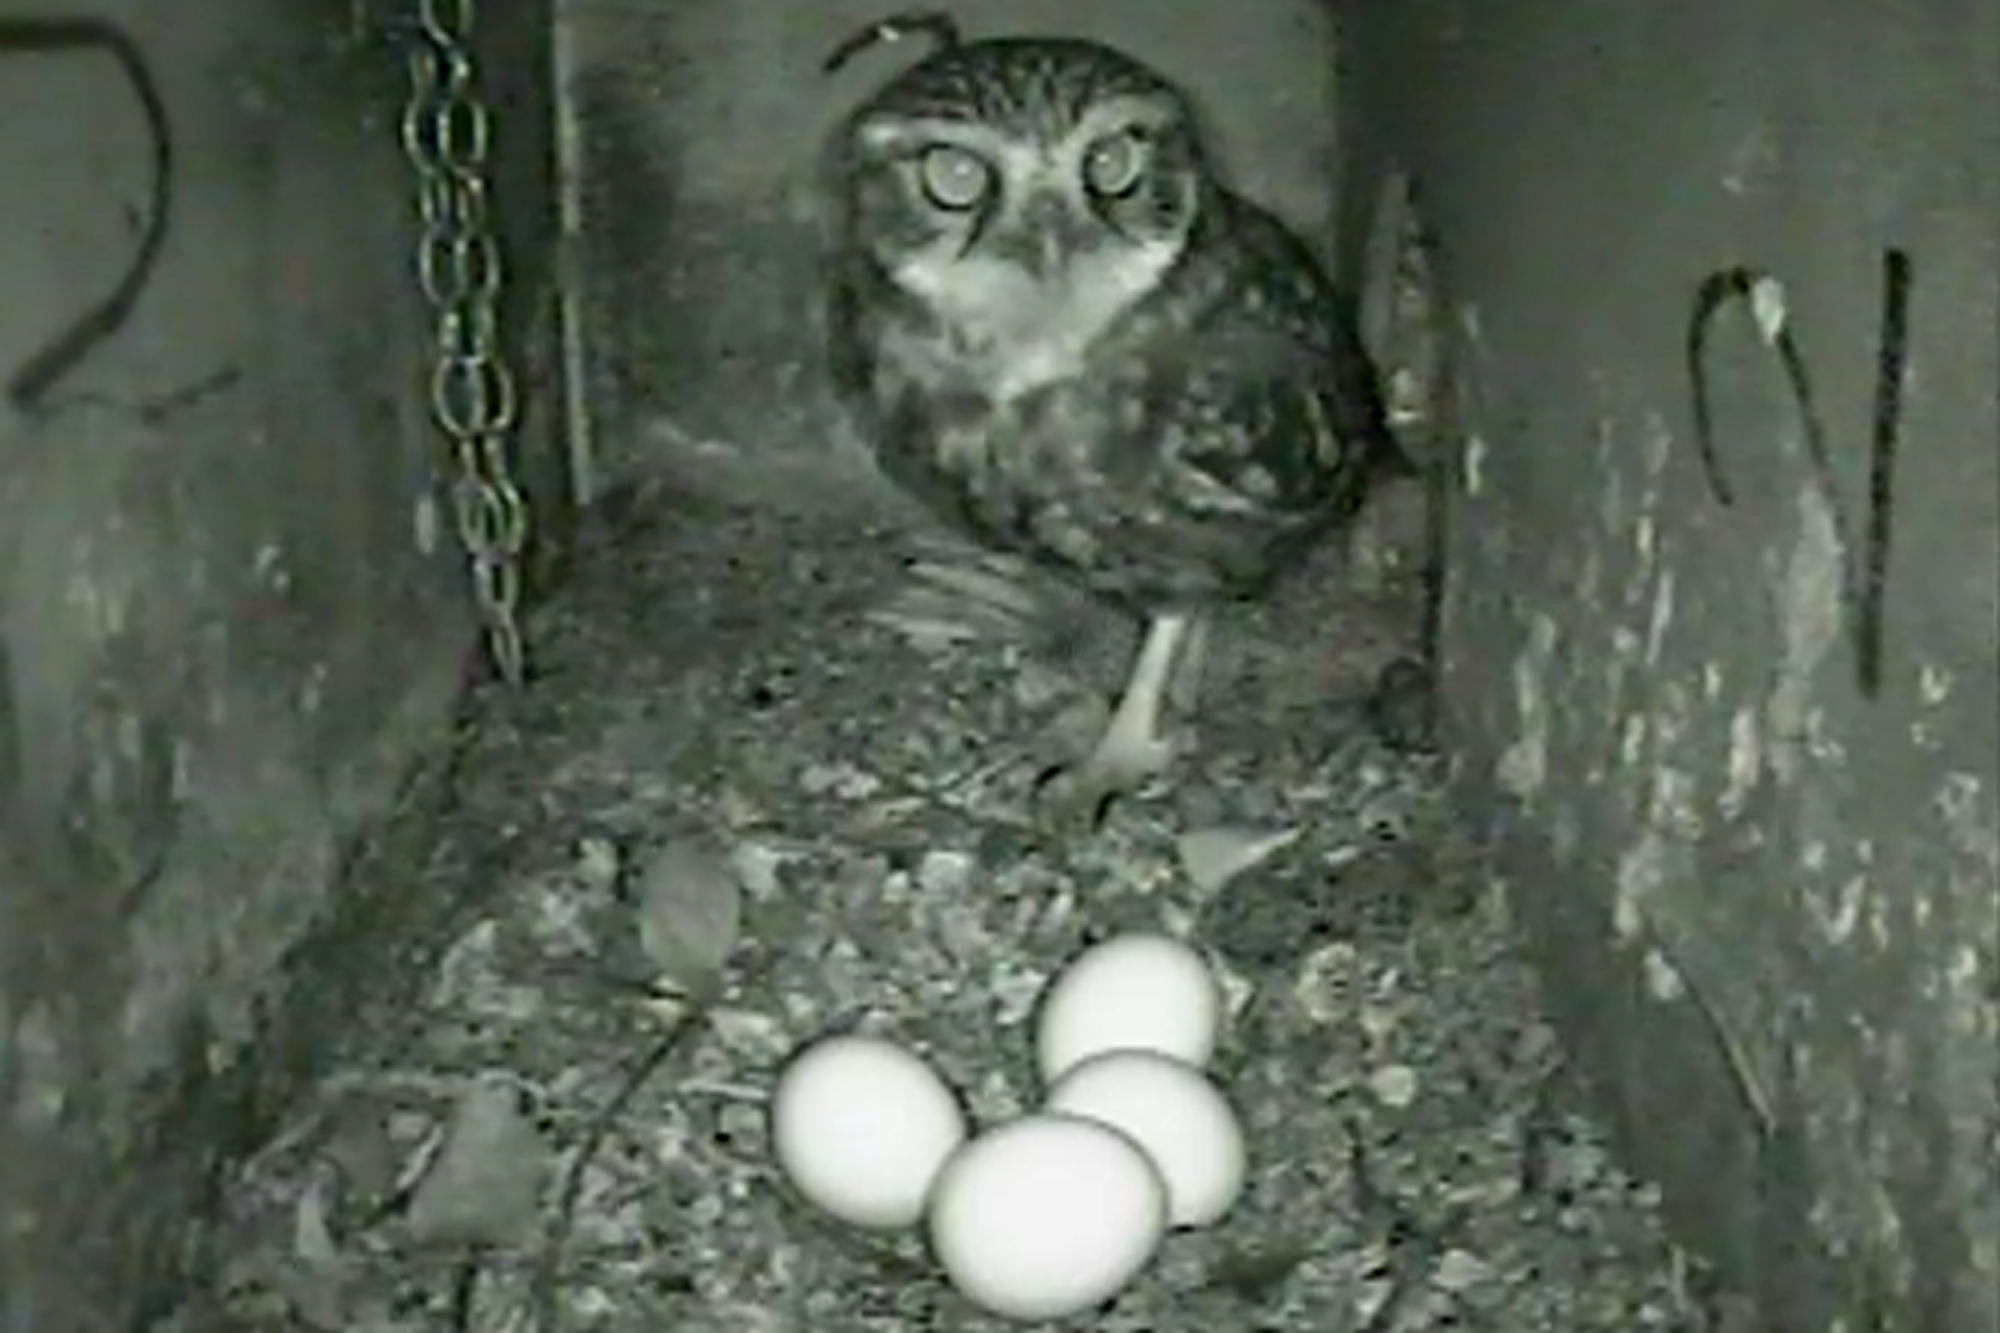 Female Little Owl with eggs inside a nest box